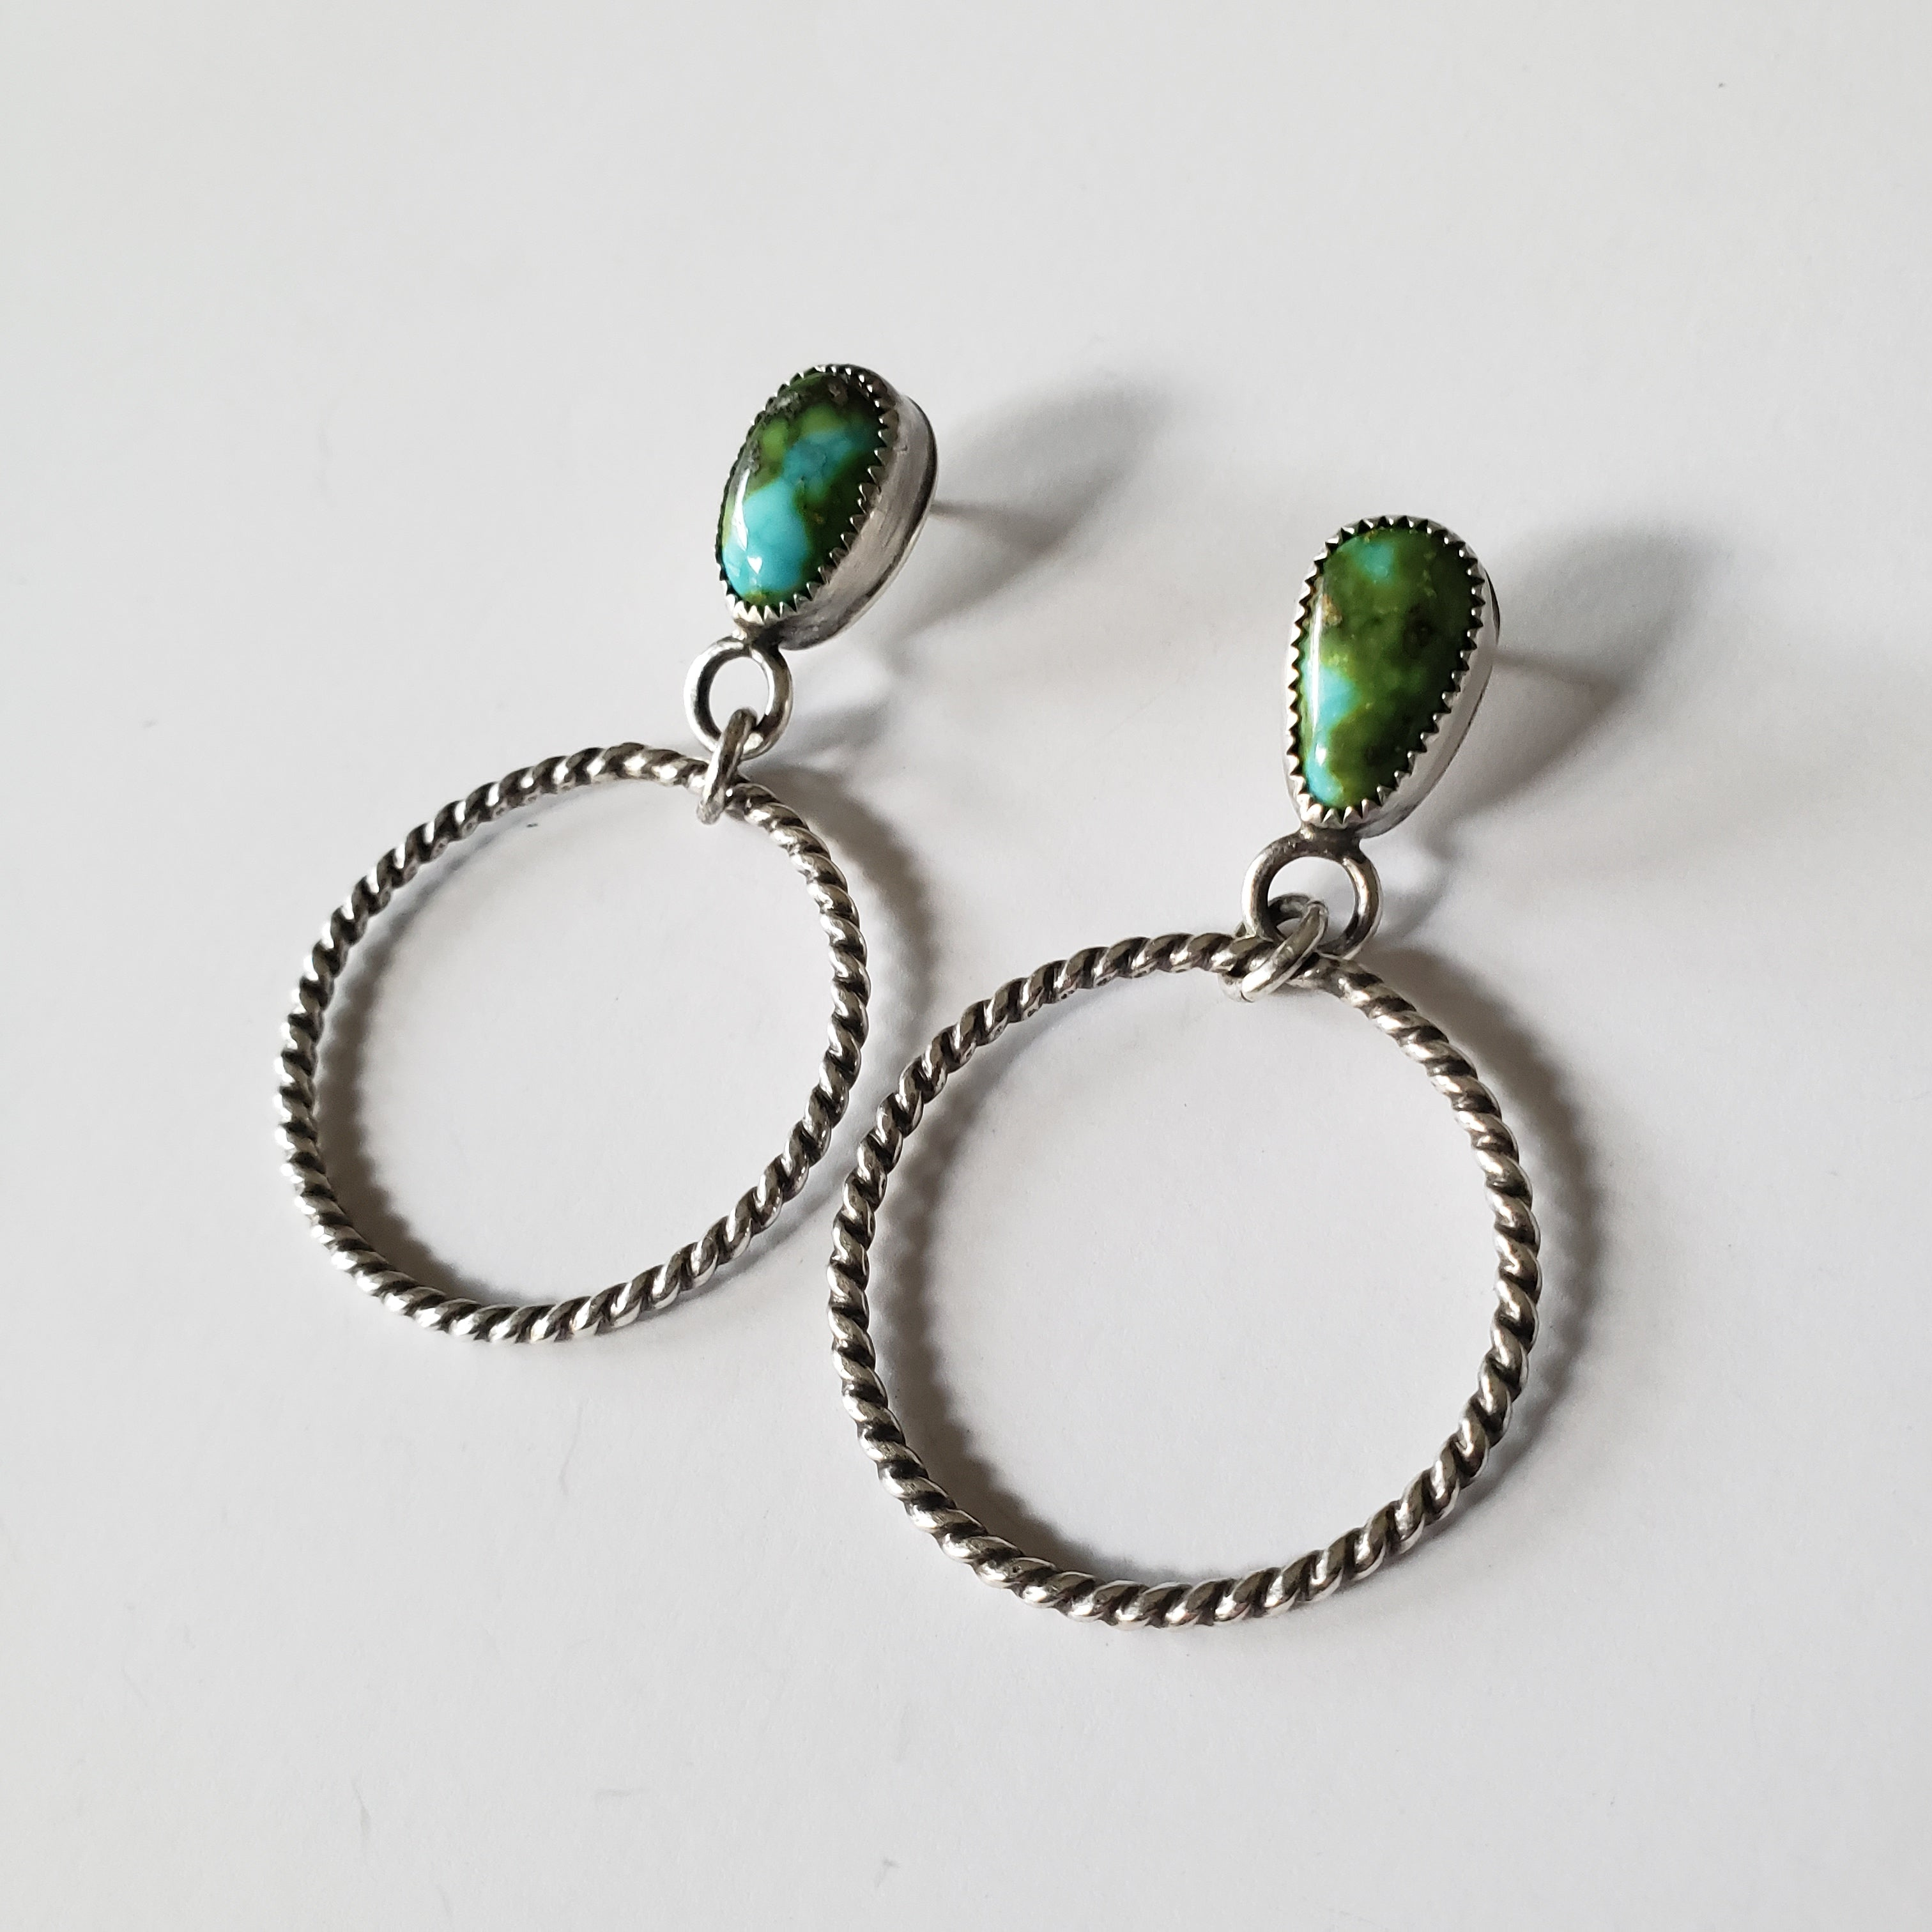 Turquoise hoop earrings